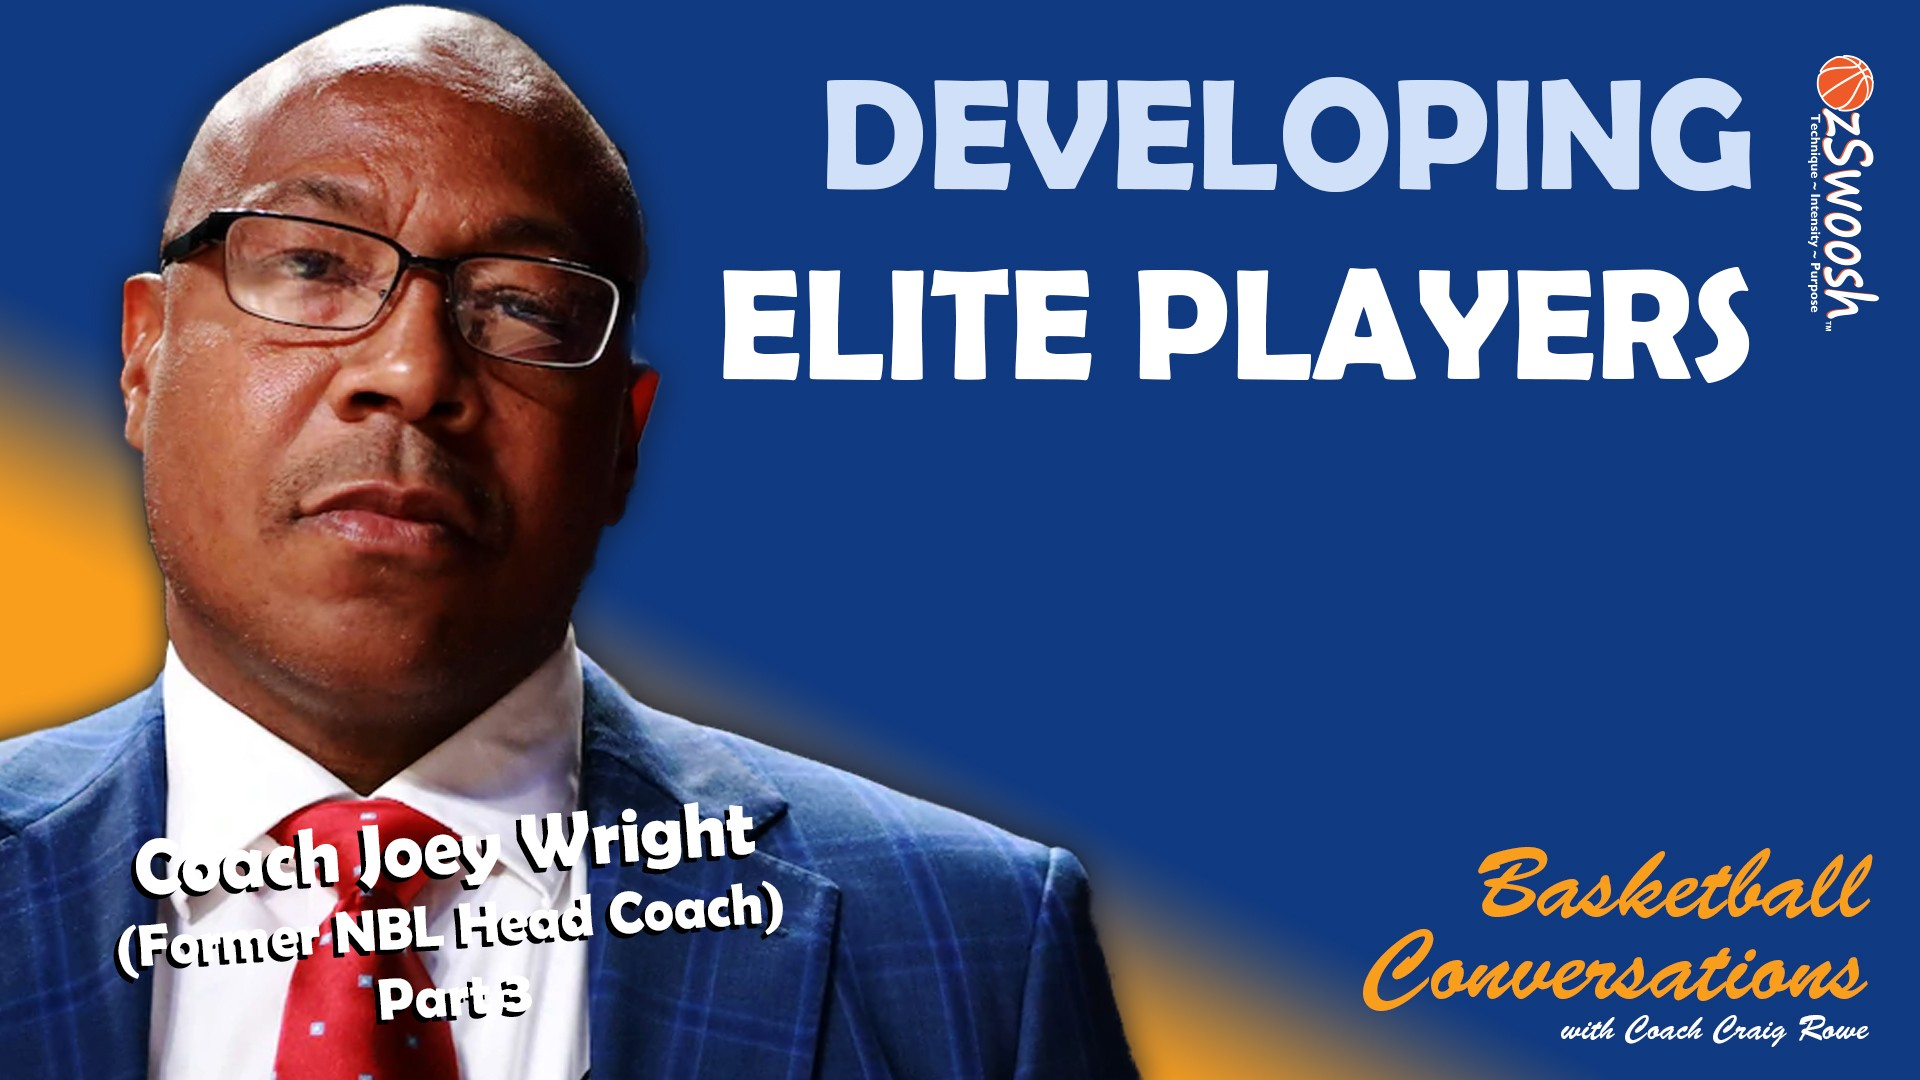 Developing Elite Basketball Players - Coach Joey Wright